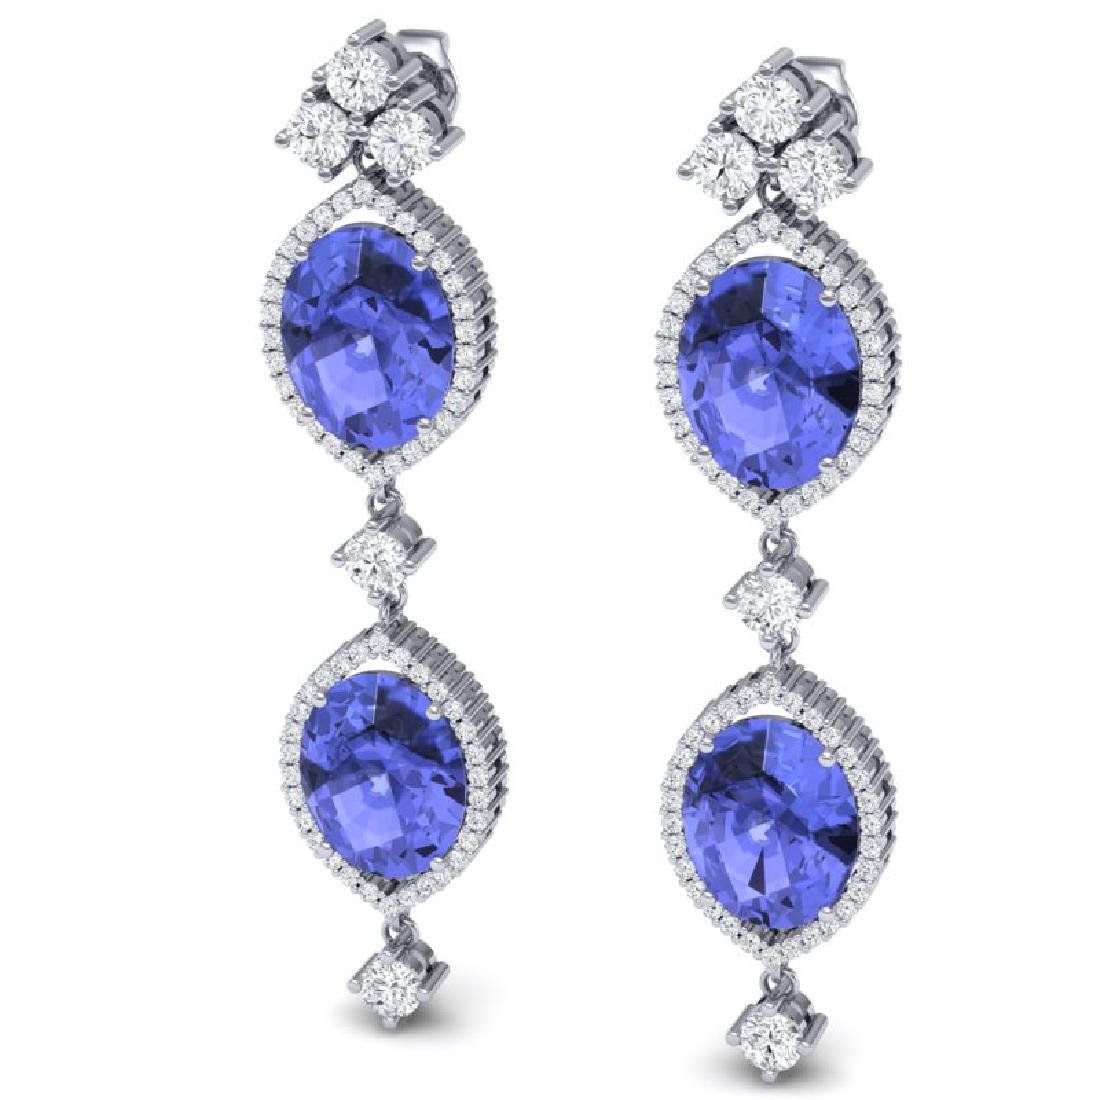 16.21 CTW Royalty Tanzanite & VS Diamond Earrings 18K - 2